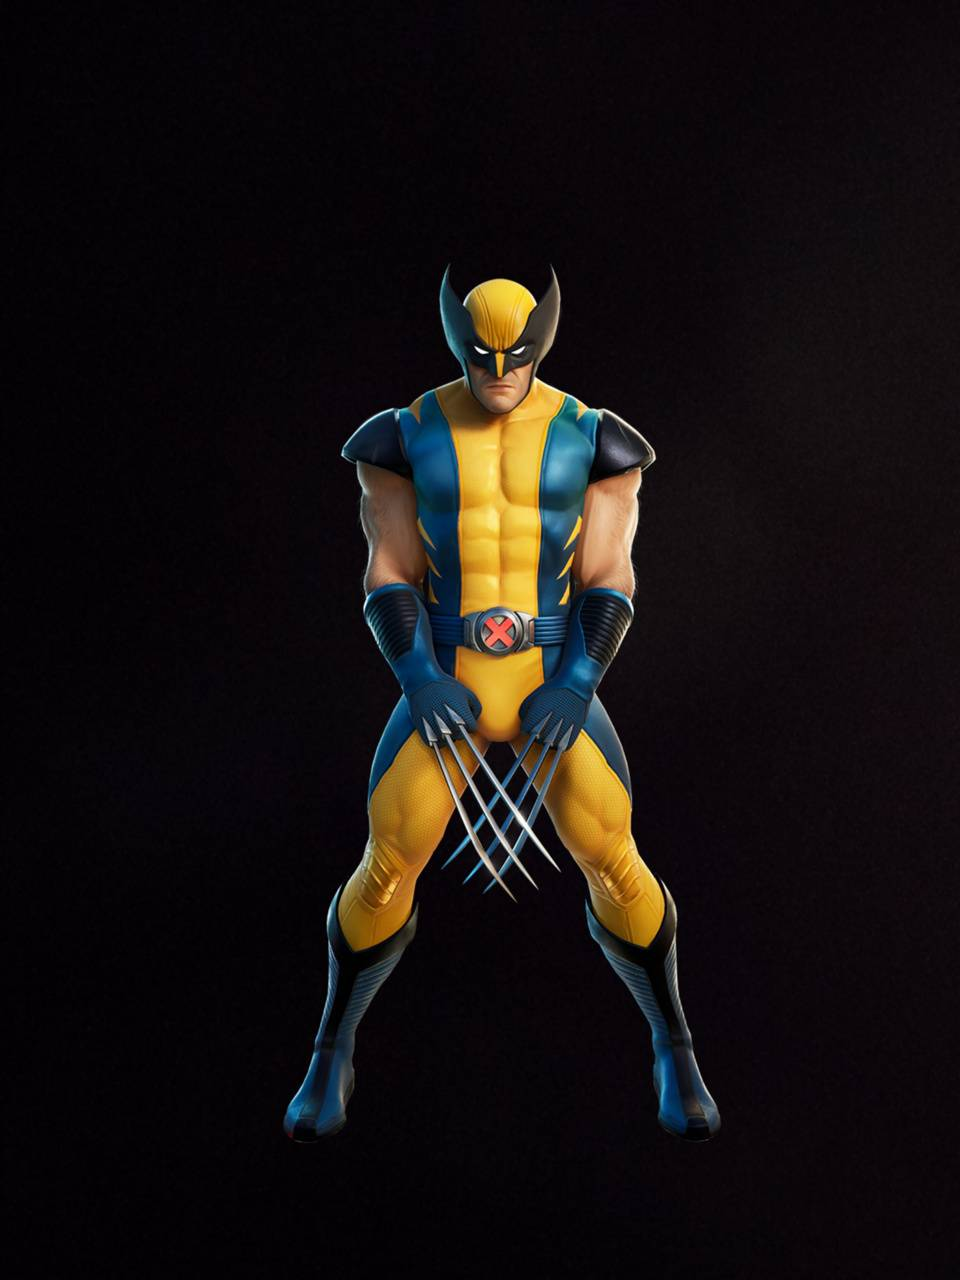 Wolverine Fortnite Wallpaper By Conaua 1a Free On Zedge